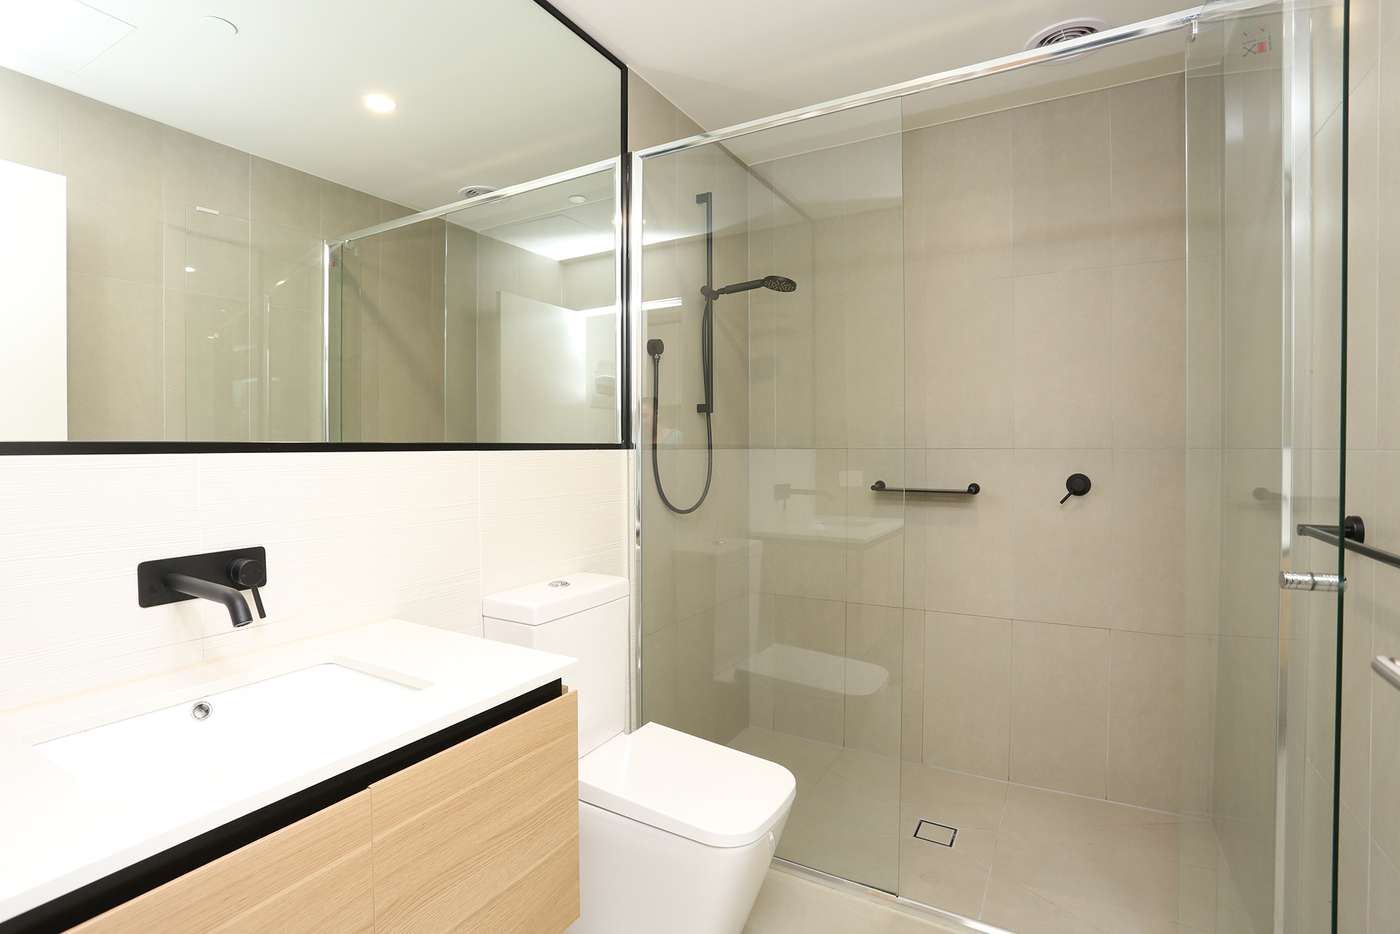 Fifth view of Homely apartment listing, 303/260-274 Lygon Street, Brunswick East VIC 3057